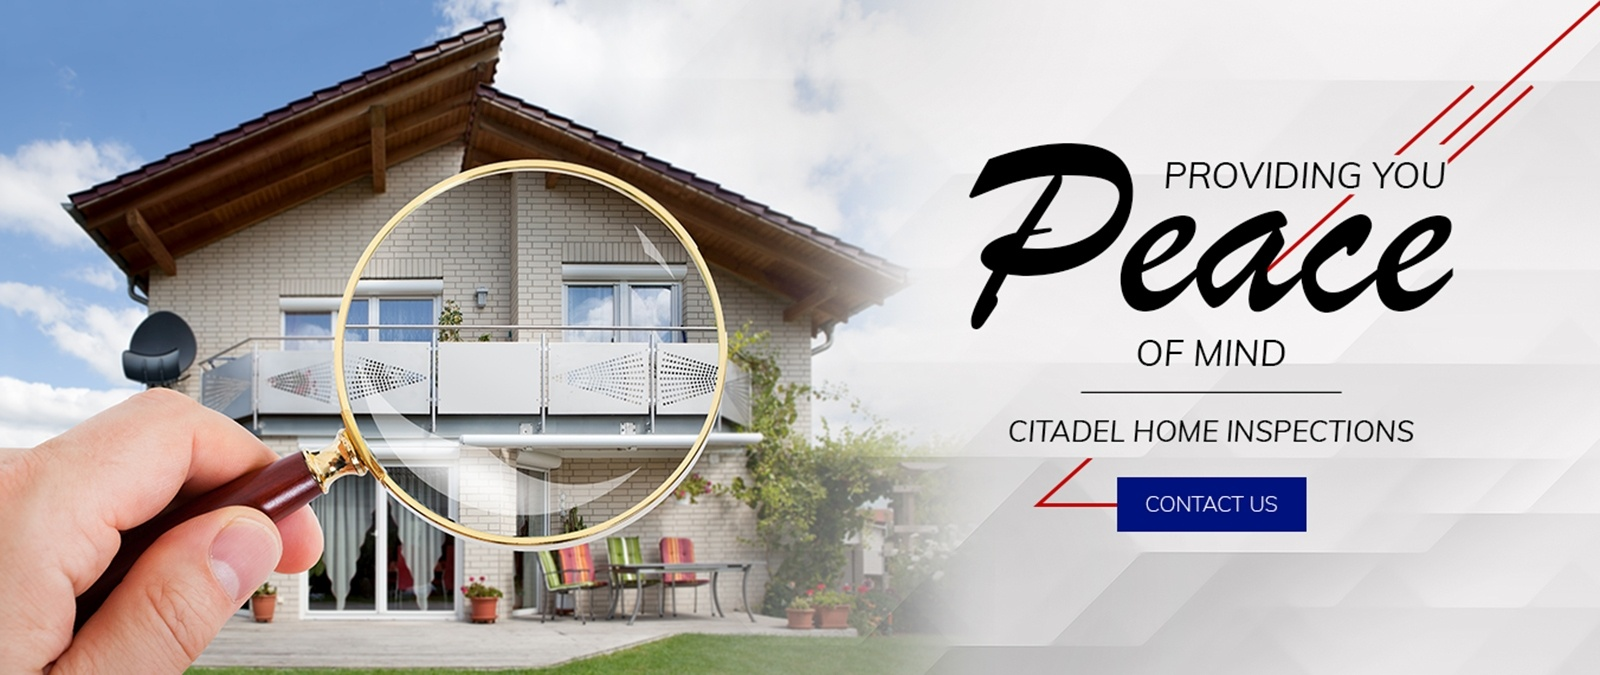 Providing you Peace of Mind - Citadel Home Inspections